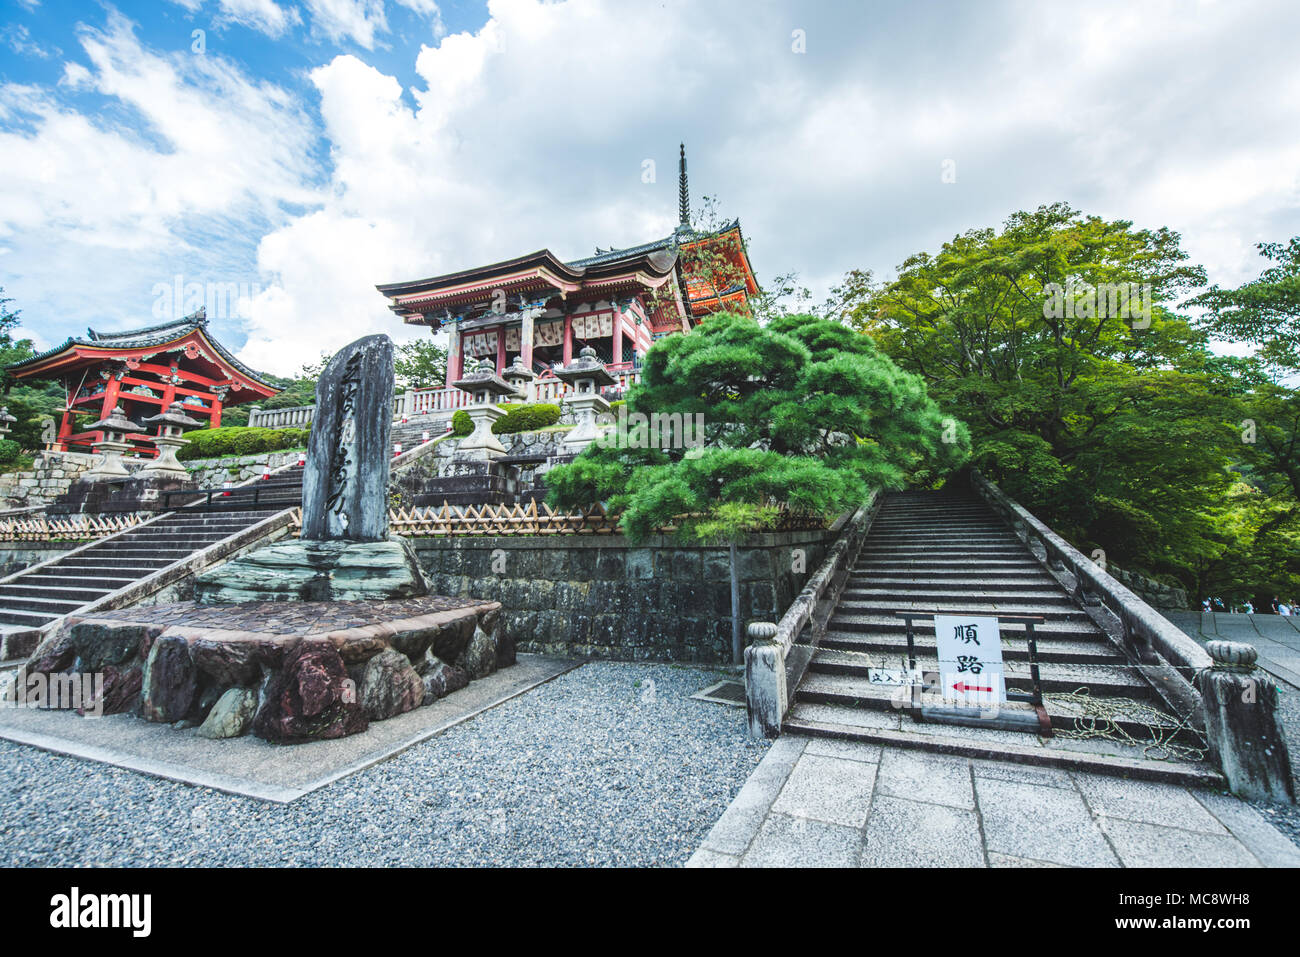 Japanese life, landscapes and temples Photo: Alessandro Bosio/Alamy Stock Photo